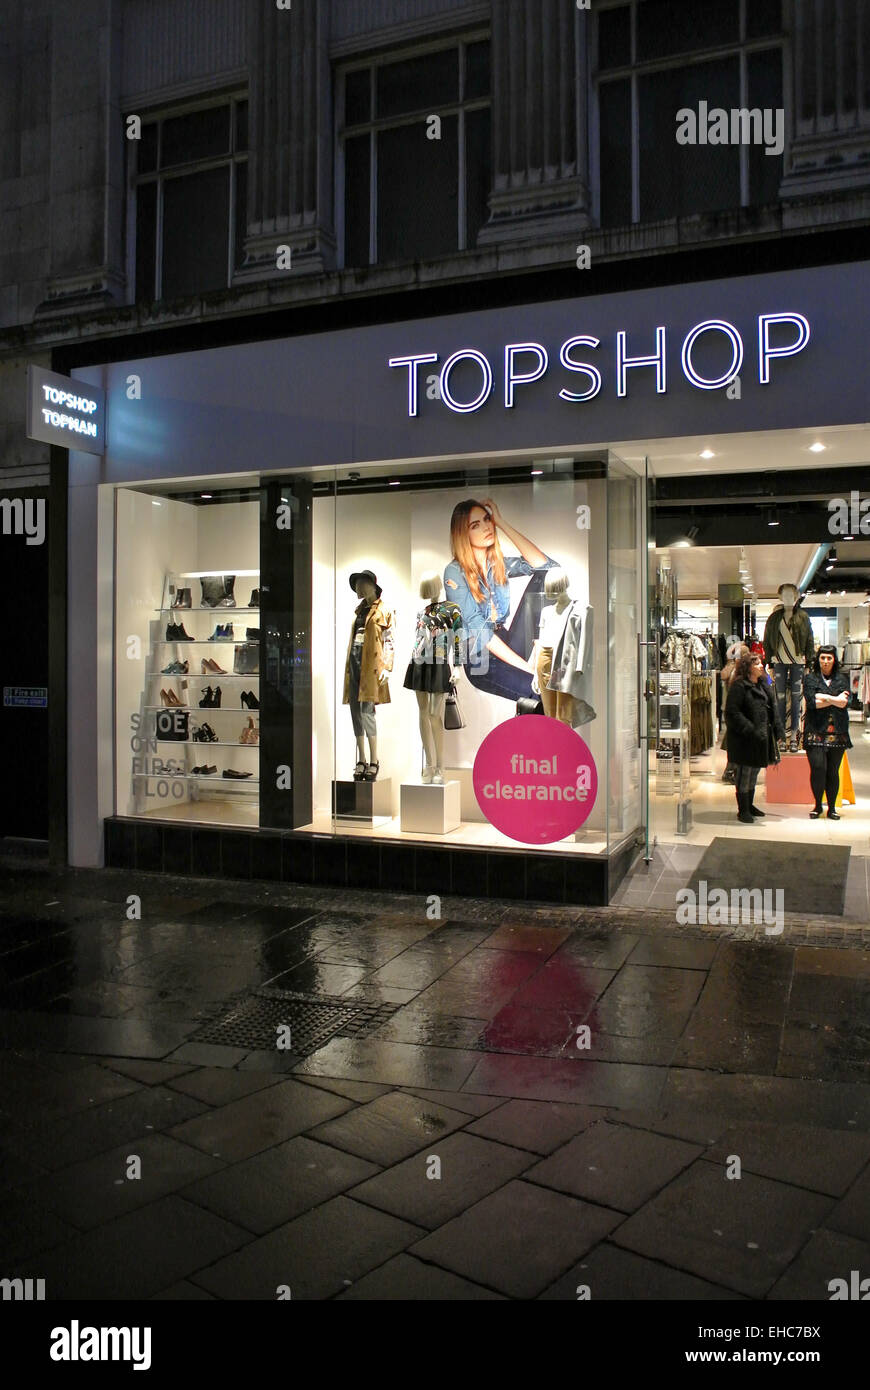 462323a2d Top Shop Topshop Sheffield UK Stock Photo: 79559870 - Alamy